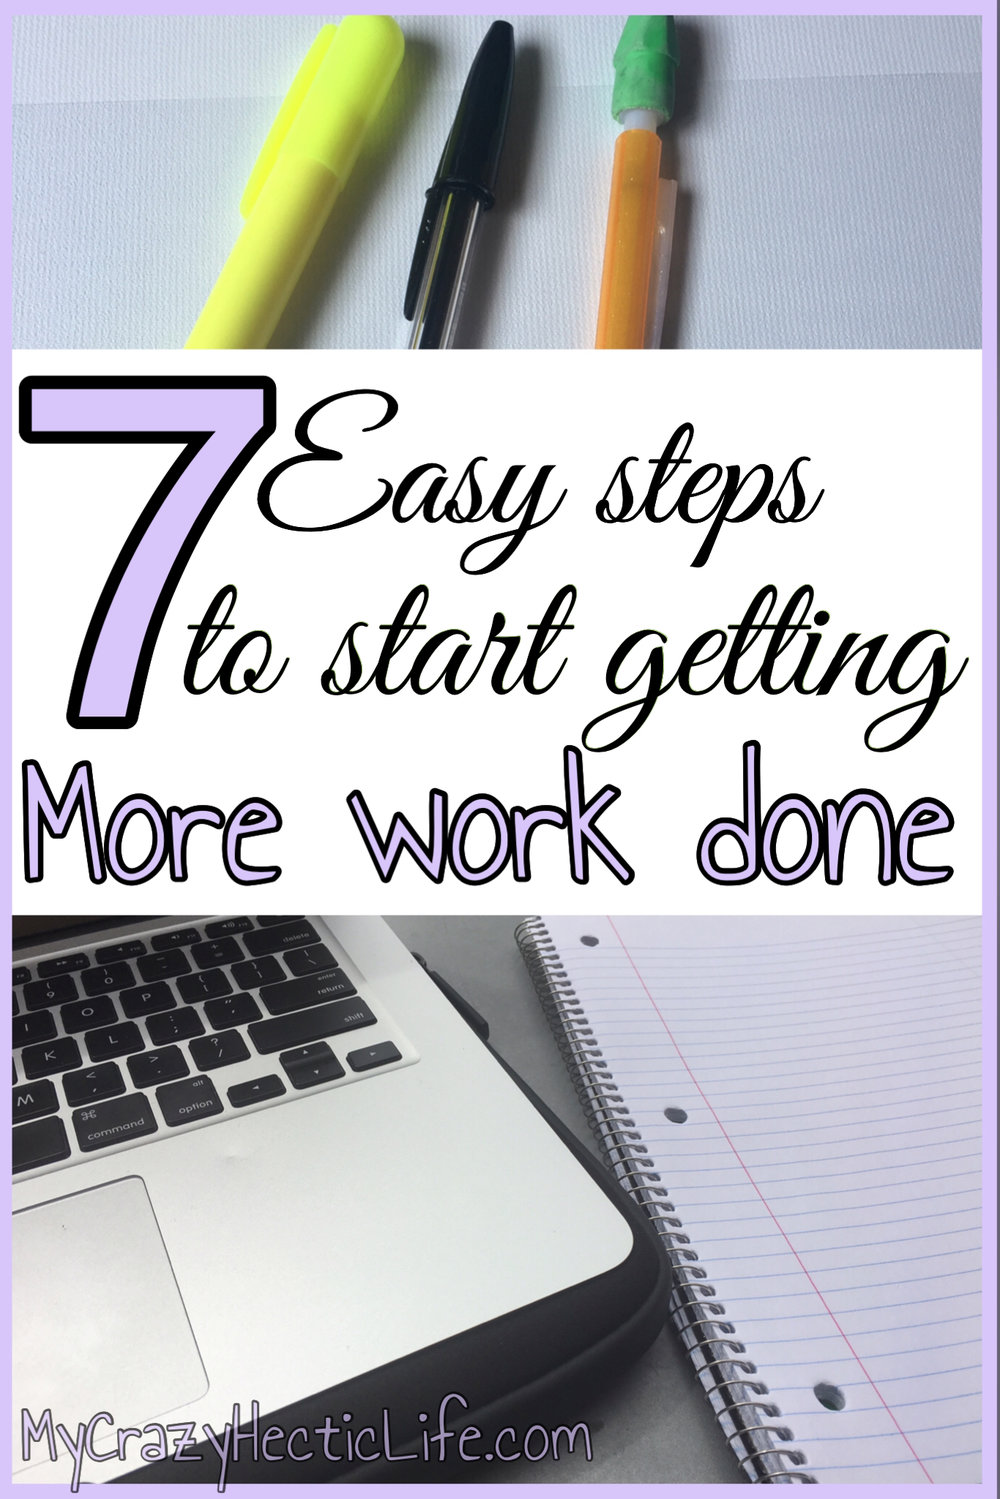 Start getting more work done ... like a boss!